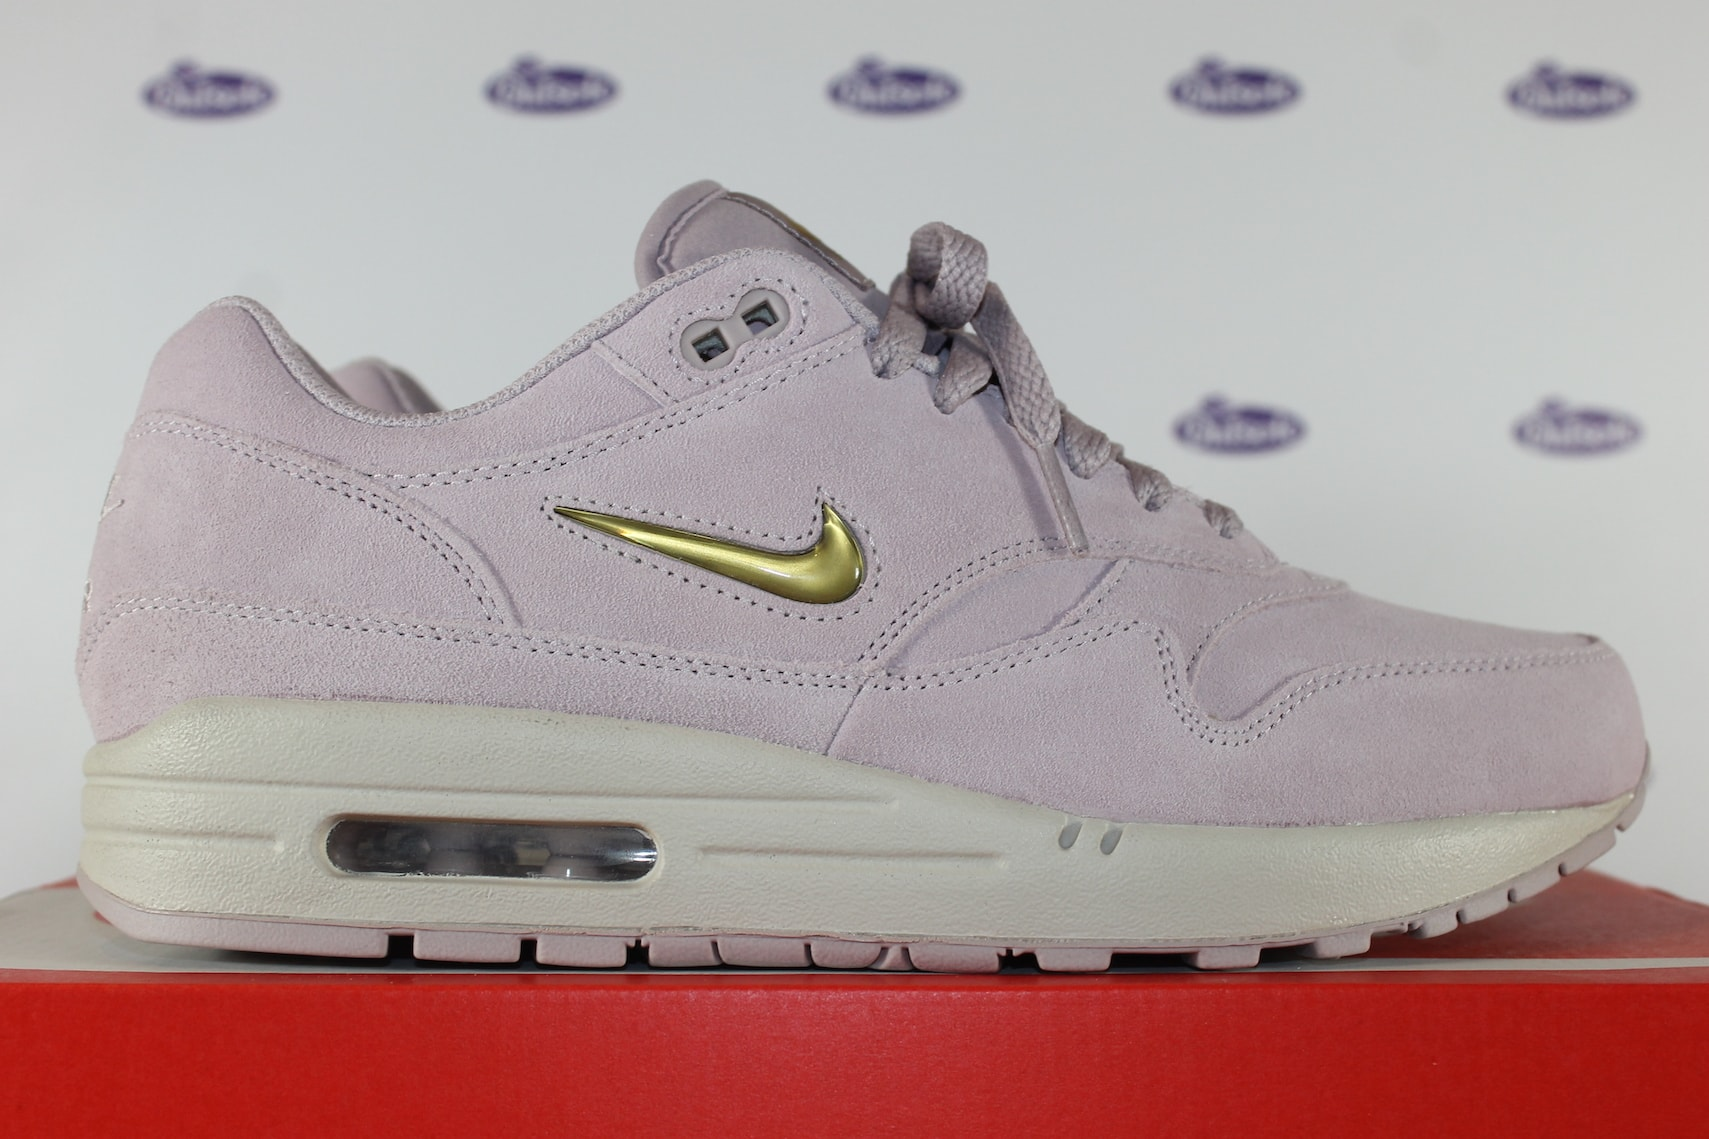 Nike Air Max 1 Premium SC Particle Rose Jewel